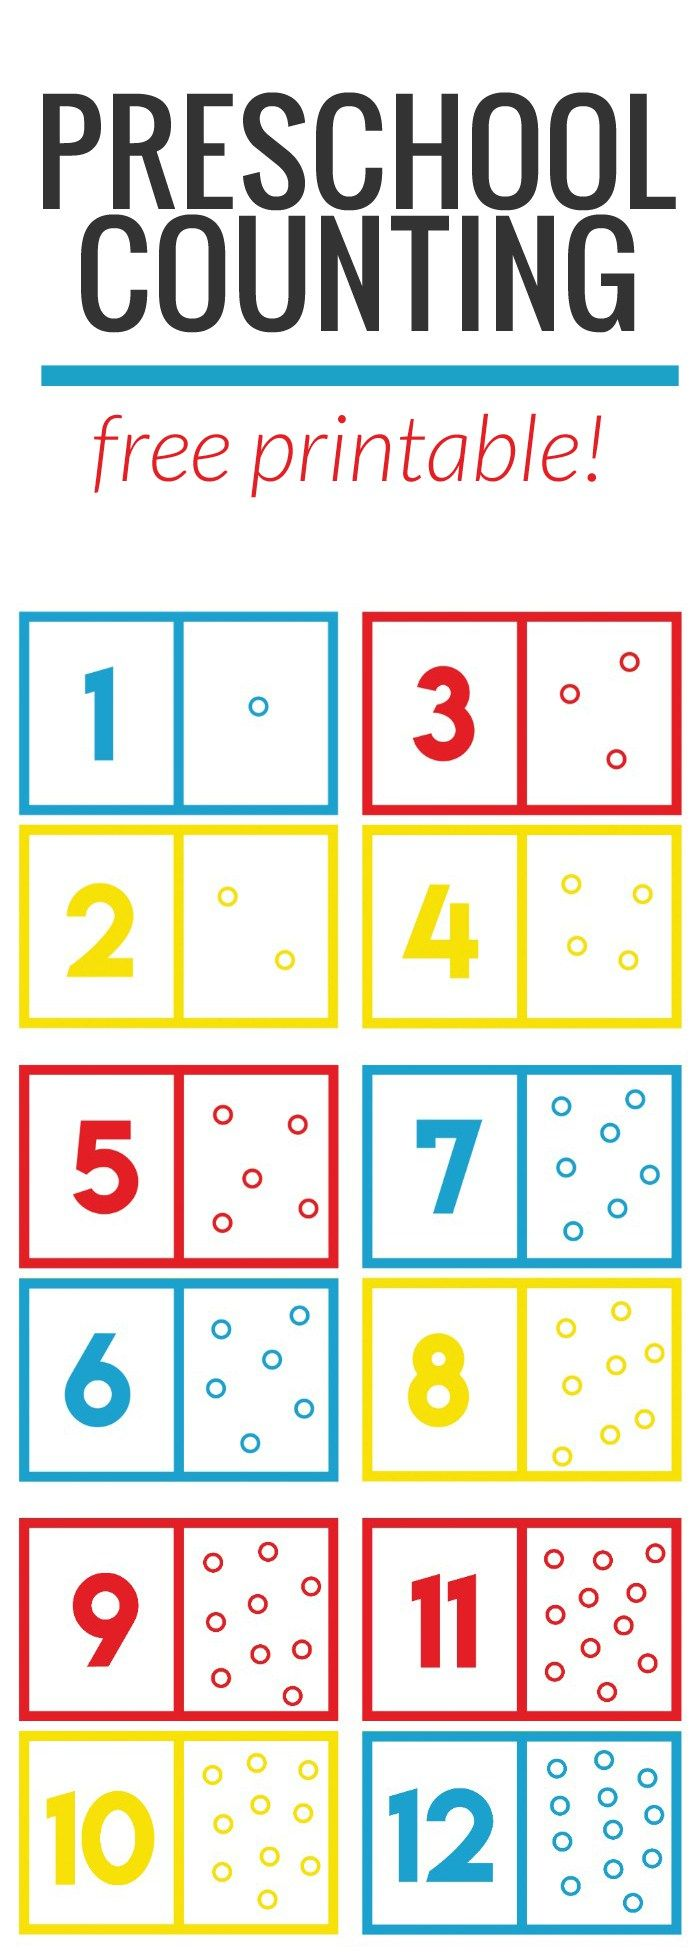 Cute preschool math / counting printable! Cut the cards out and have the child count the dots while putting their favorite treats on the dots!